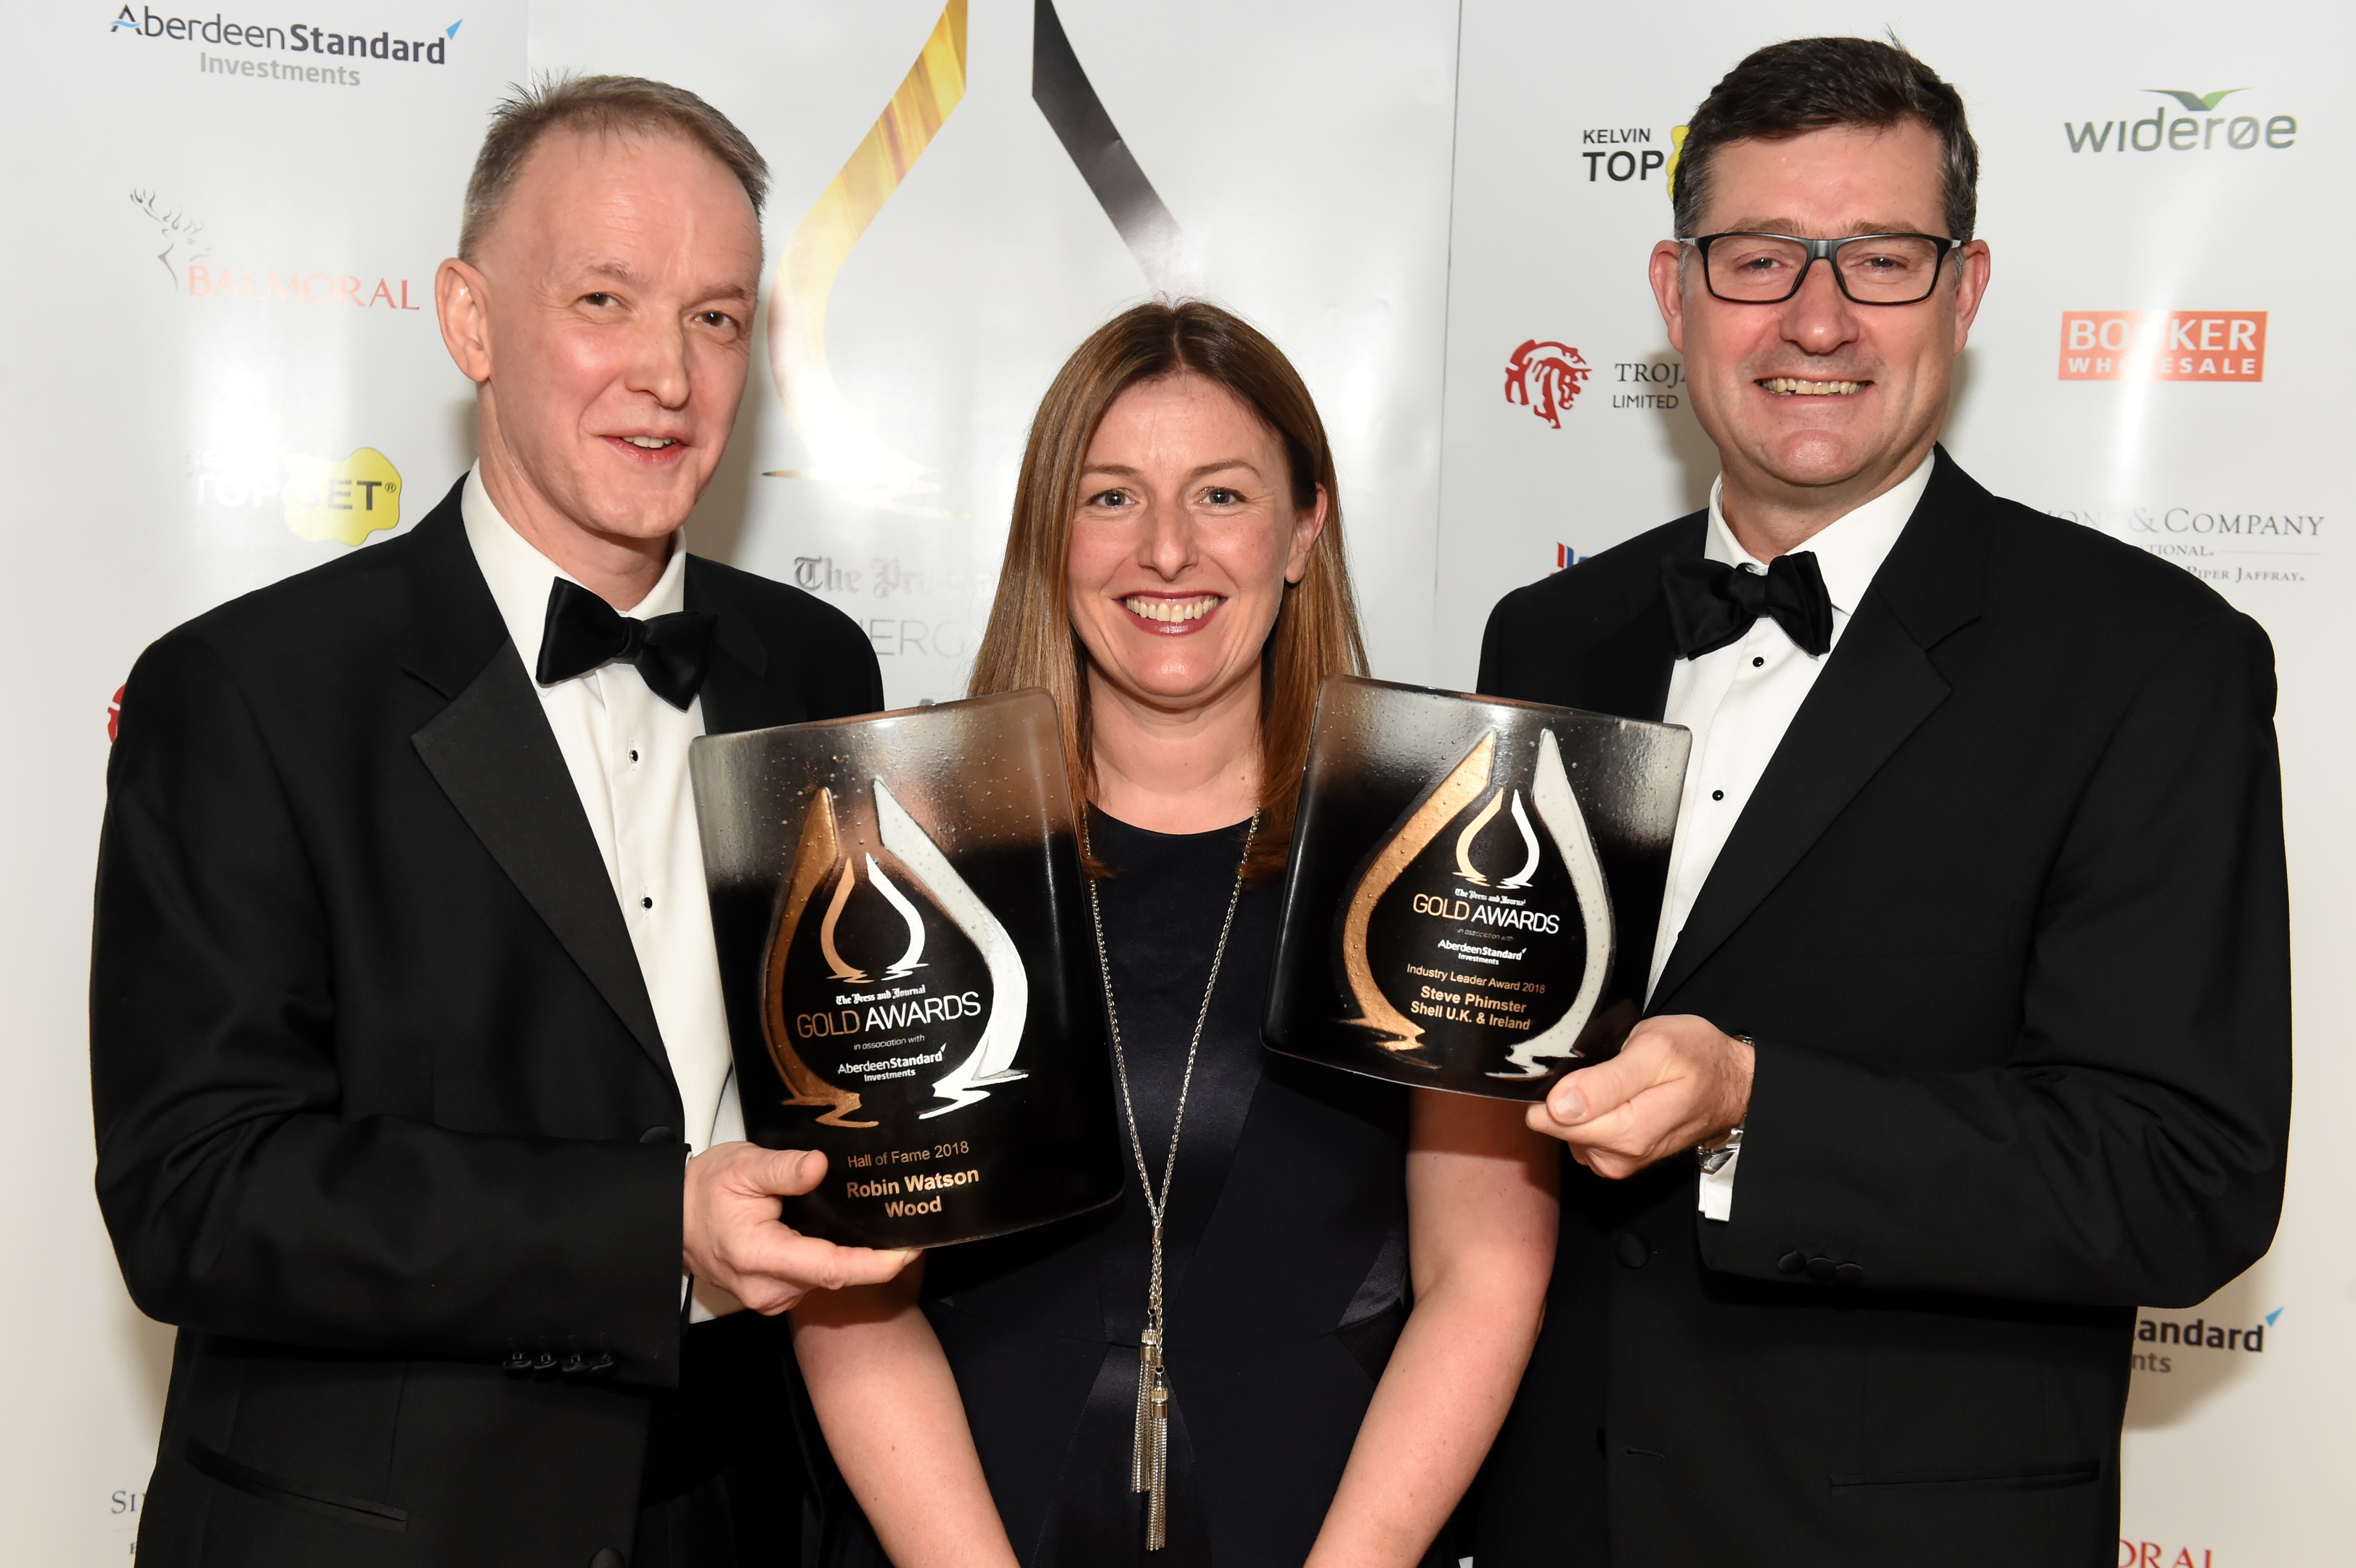 Press & Journal's Gold Awards 2018, at the Marcliffe Hotel.  Picture of (L-R) Hall of Fame winner and Wood CEO Robin Watson, Nicola Fraser from sponsor Aberdeen Standard Investments and Industry leader award winner Steve Phimister of Shell.   Picture by KENNY ELRICK     07/09/2018